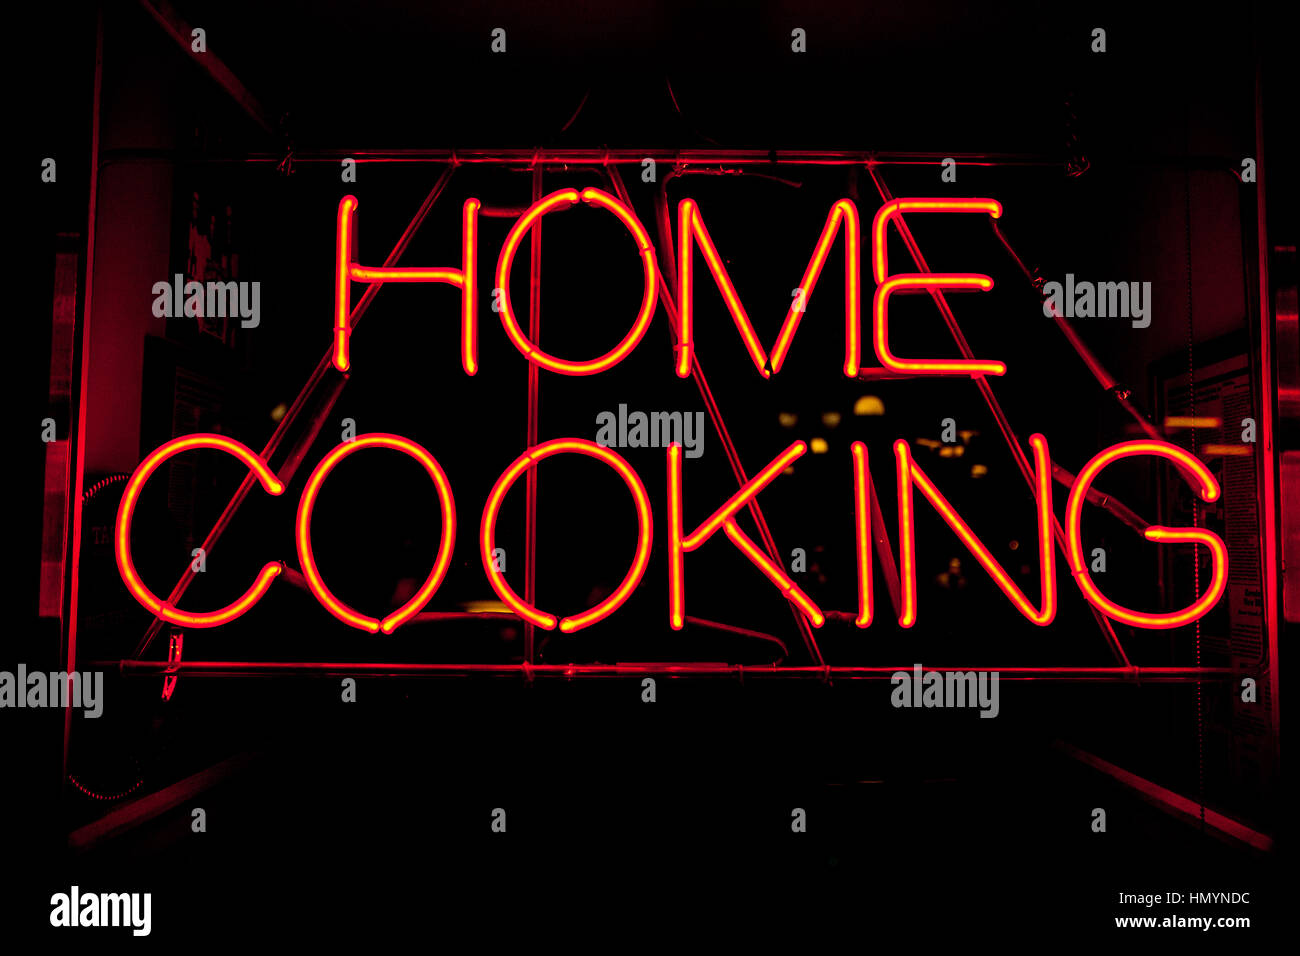 Home cooking neon sign - Stock Image